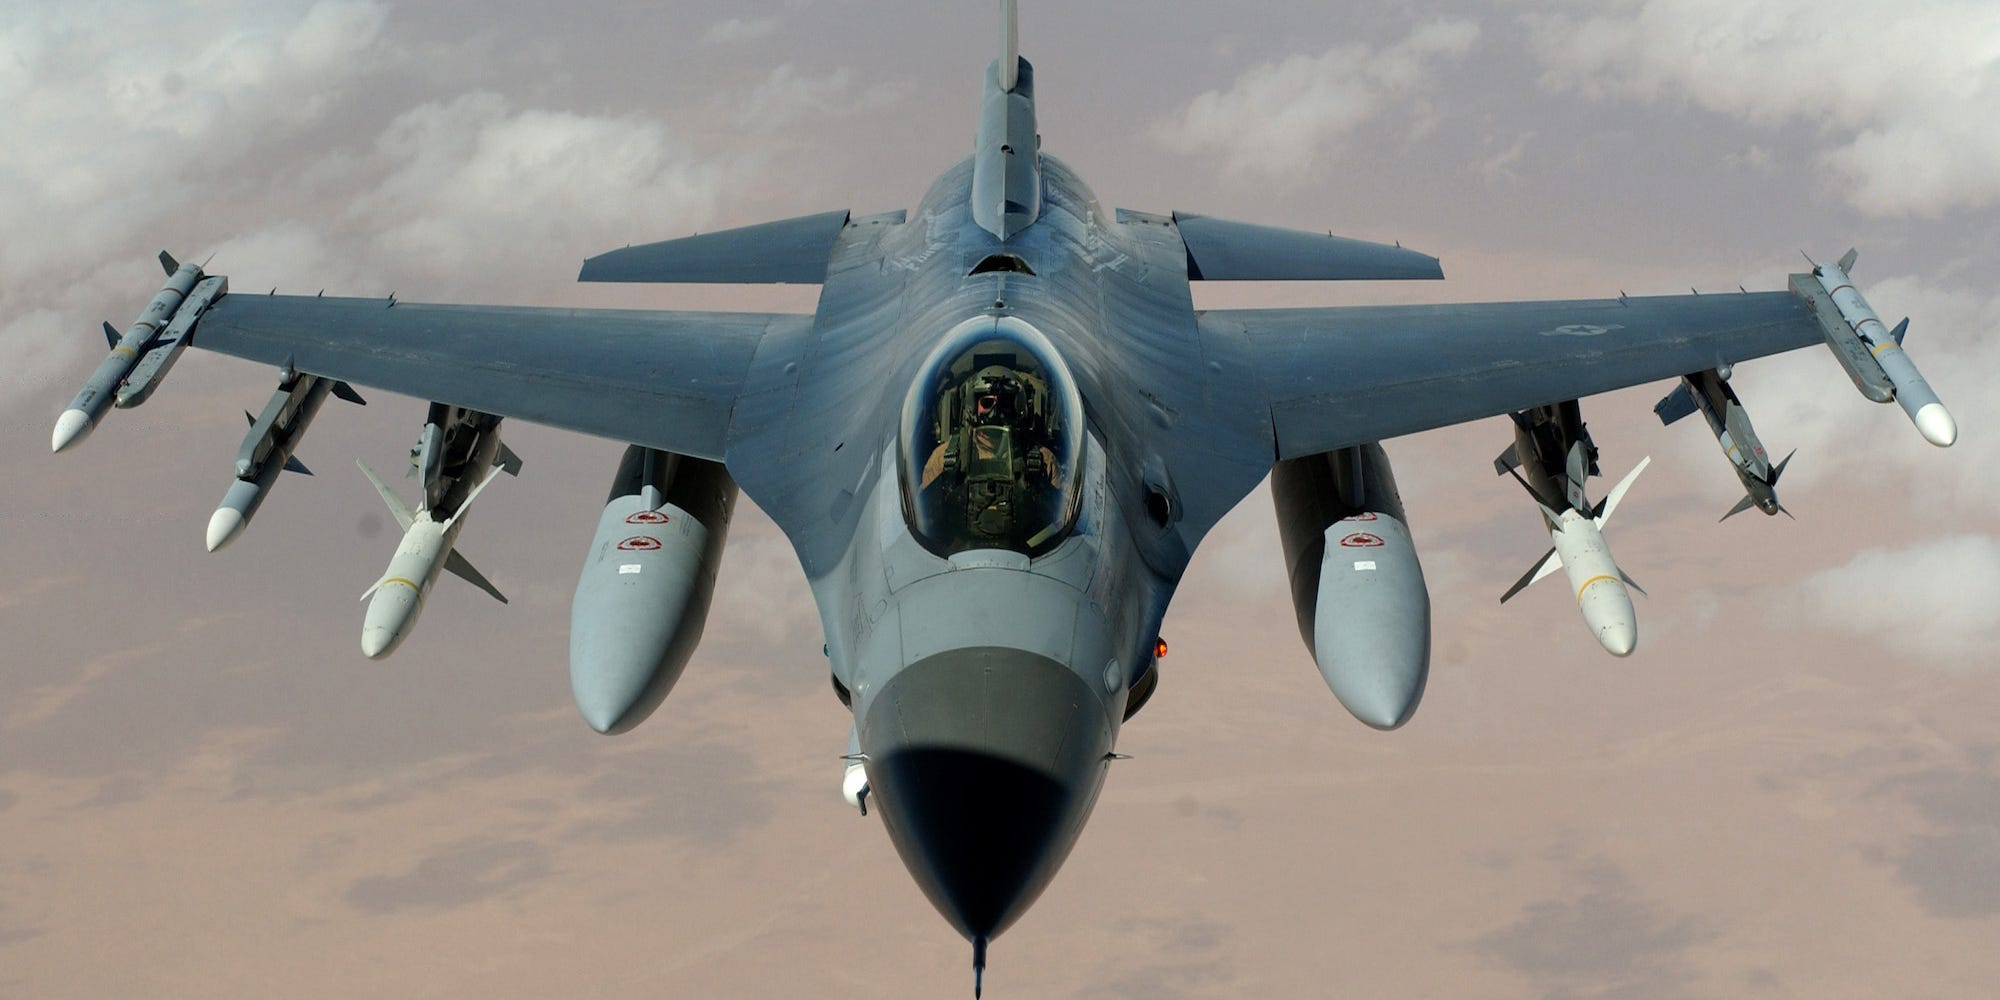 Air Force F-16 Fighting Falcon fighter jet